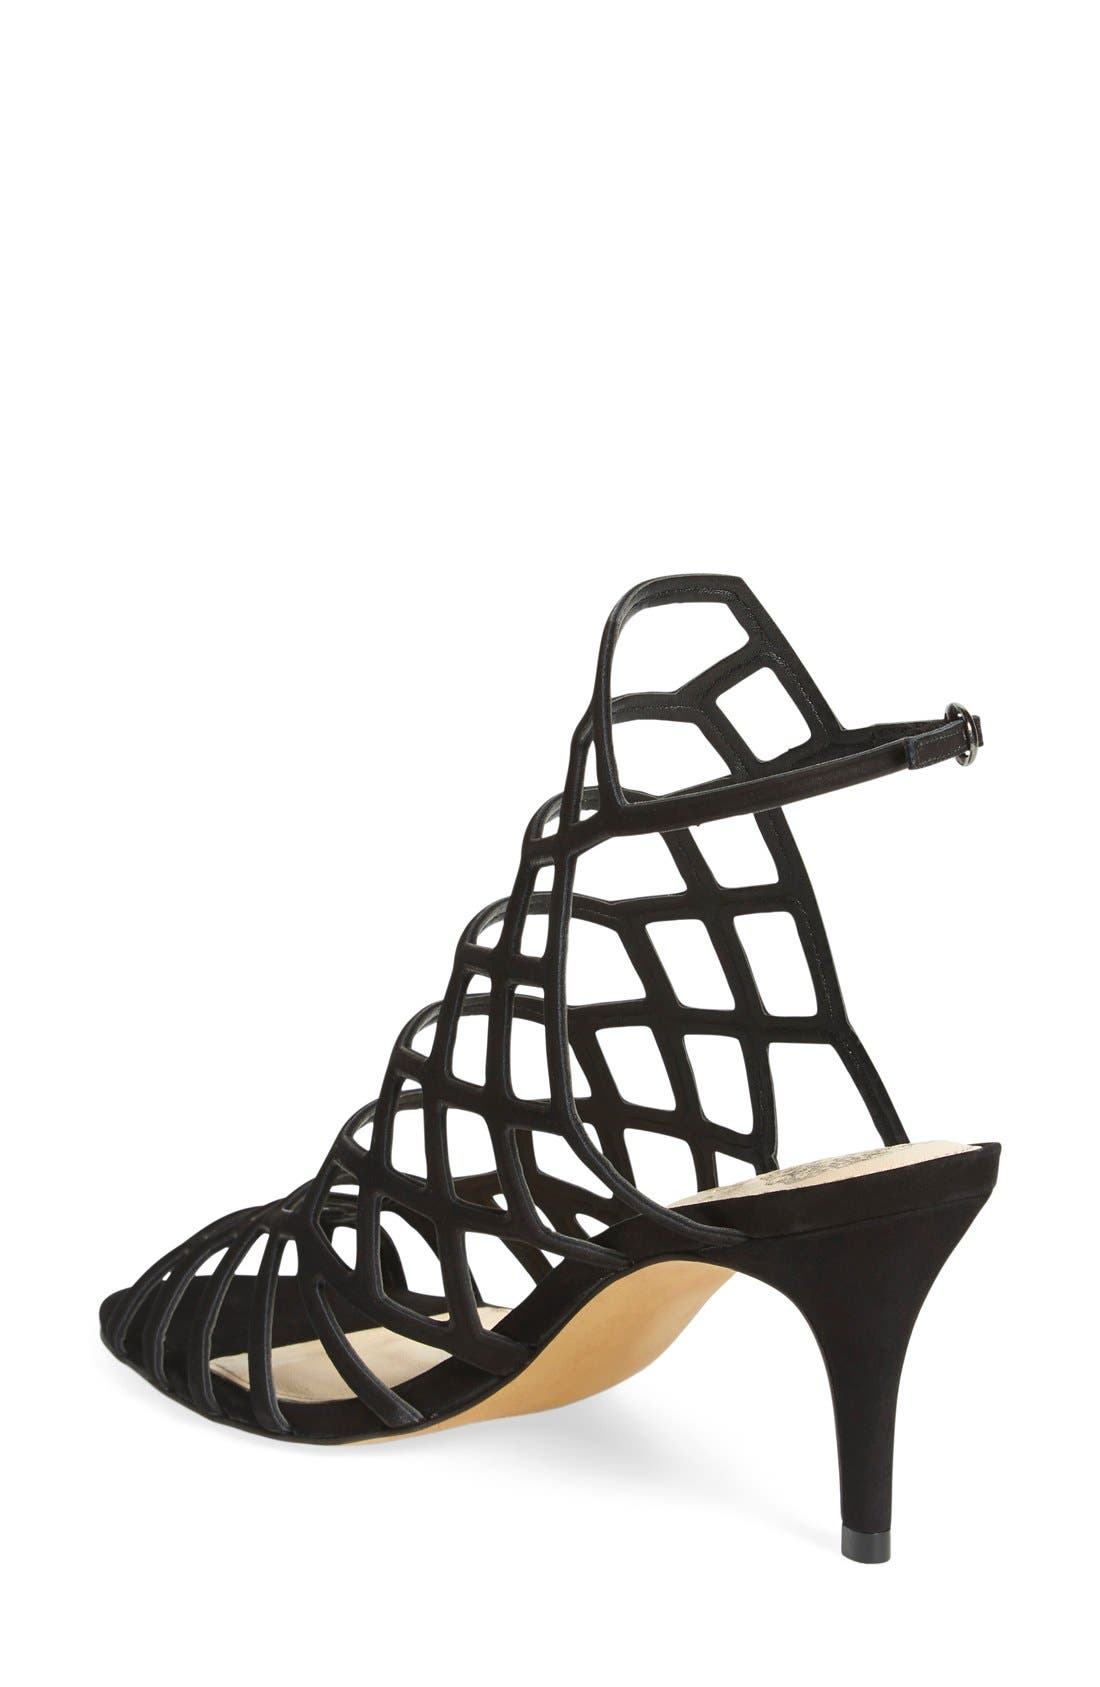 'Paxton' Slingback Sandal,                             Alternate thumbnail 3, color,                             001